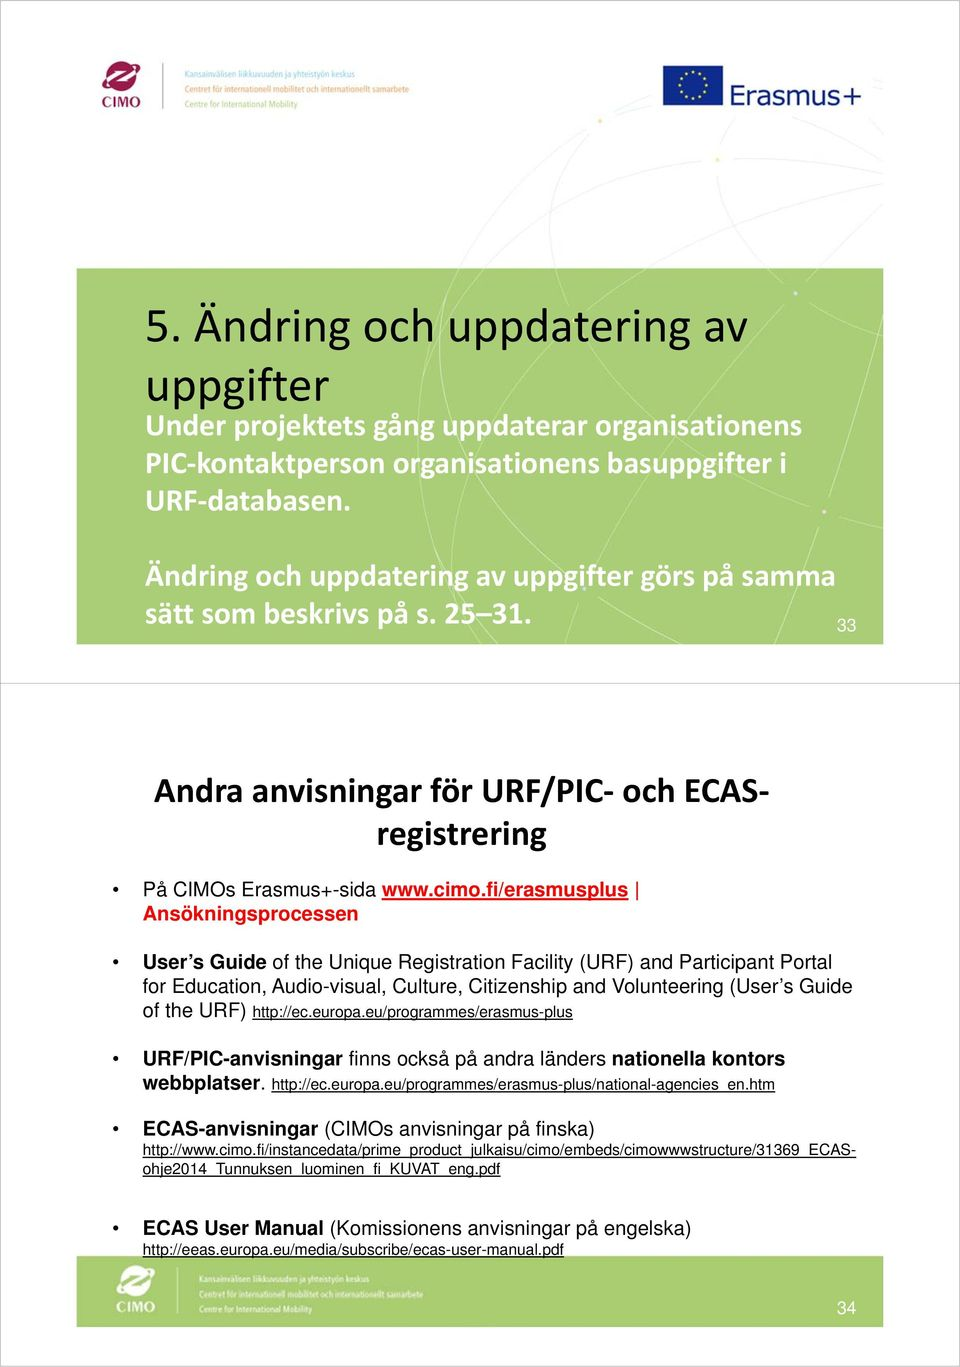 fi/erasmusplus Ansökningsprocessen User s Guide of the Unique Registration Facility (URF) and Participant Portal for Education, Audio-visual, Culture, Citizenship and Volunteering (User s Guide of